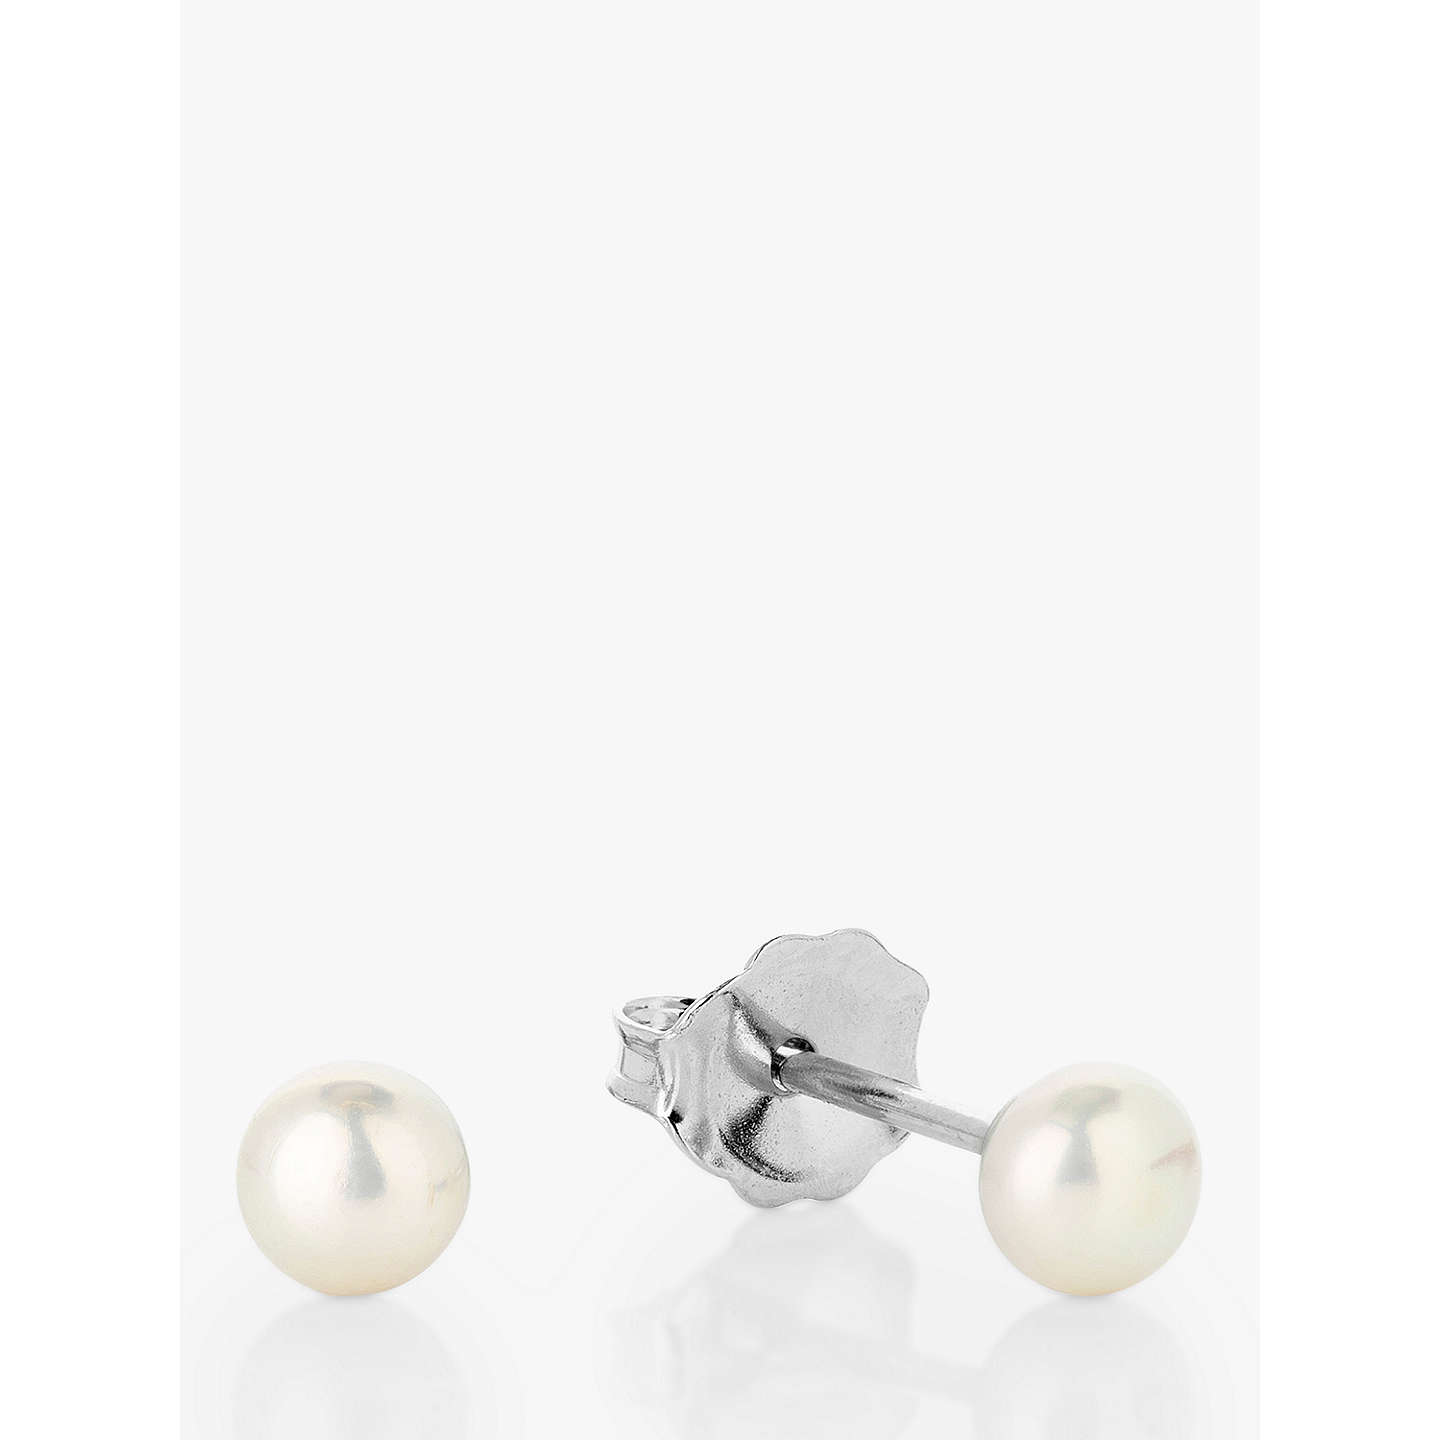 ted white mini hurleys baker gold earrings eisley womens button stud rose